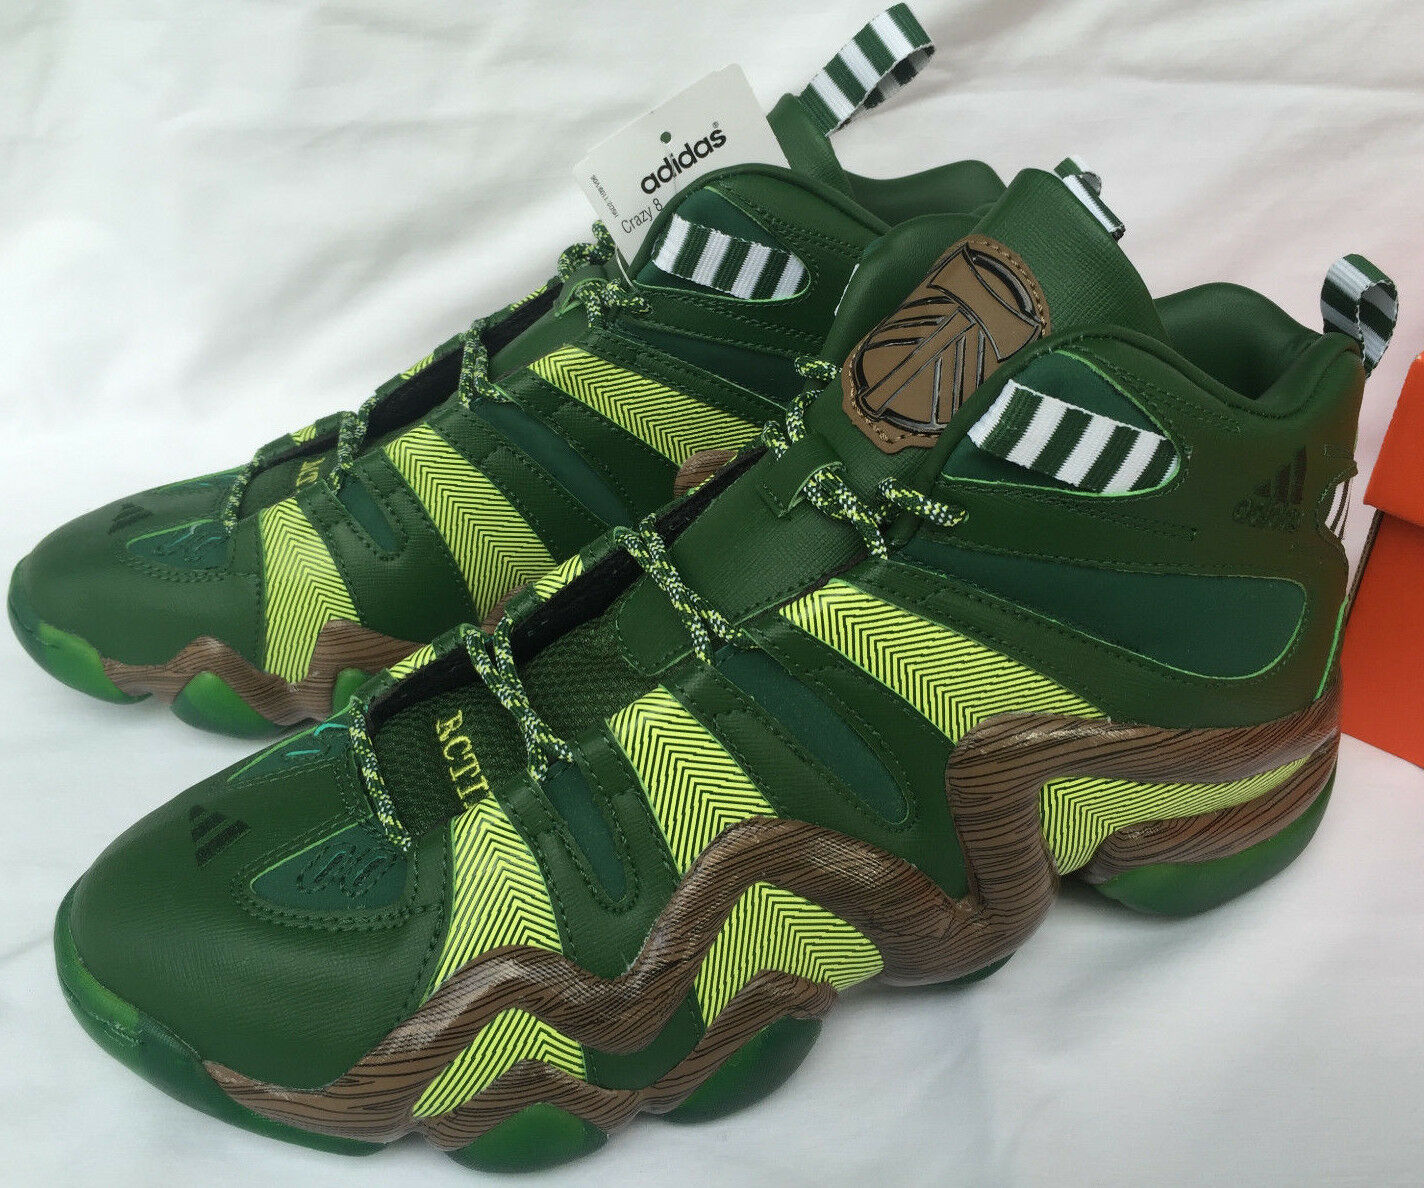 Adidas Crazy 8 Portland Timbers D69033 MLS Pondepink Basketball shoes Men's 11